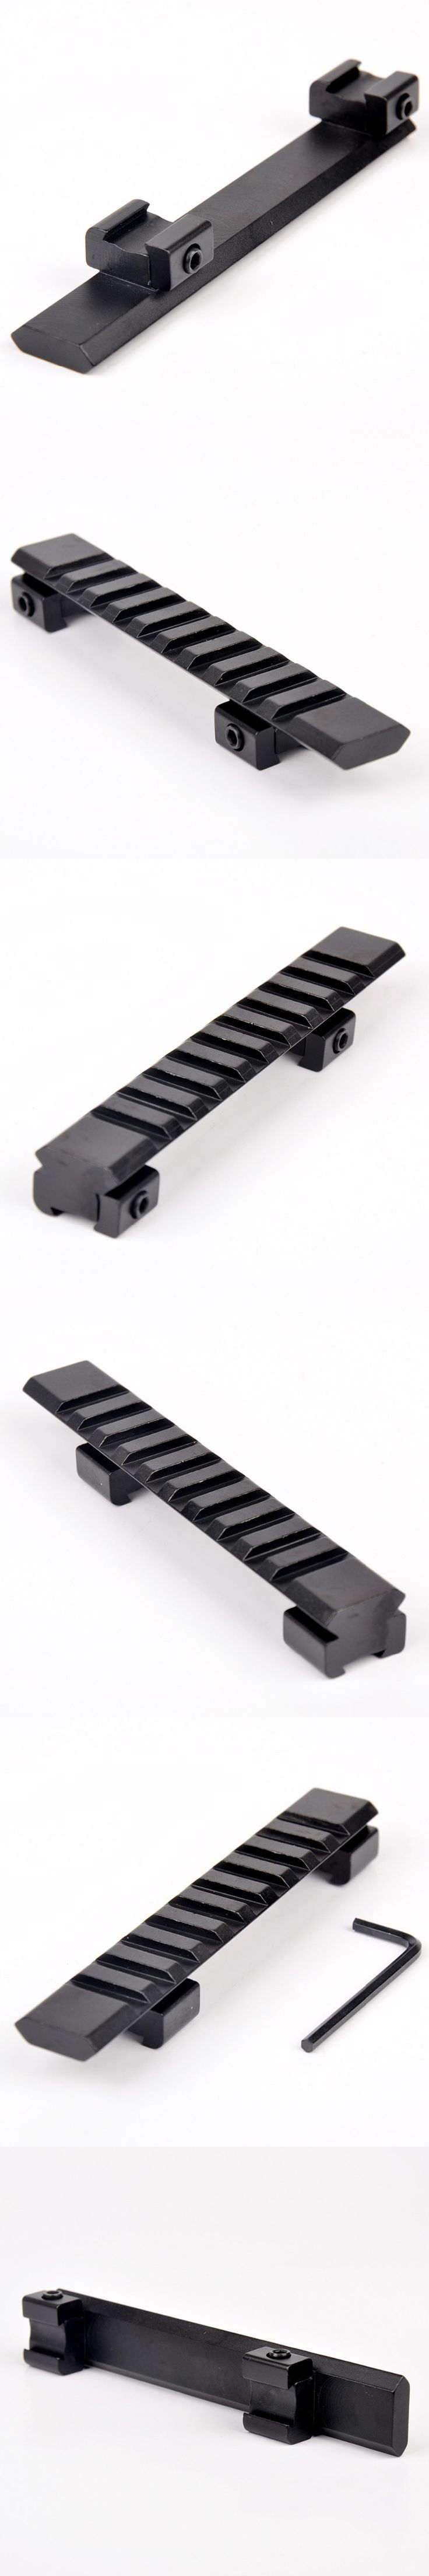 11mm Picatinny Rail Adapter Weaver Carril Guide with 10 slots and 125mm Length For Air Gun Scope Mount #2689